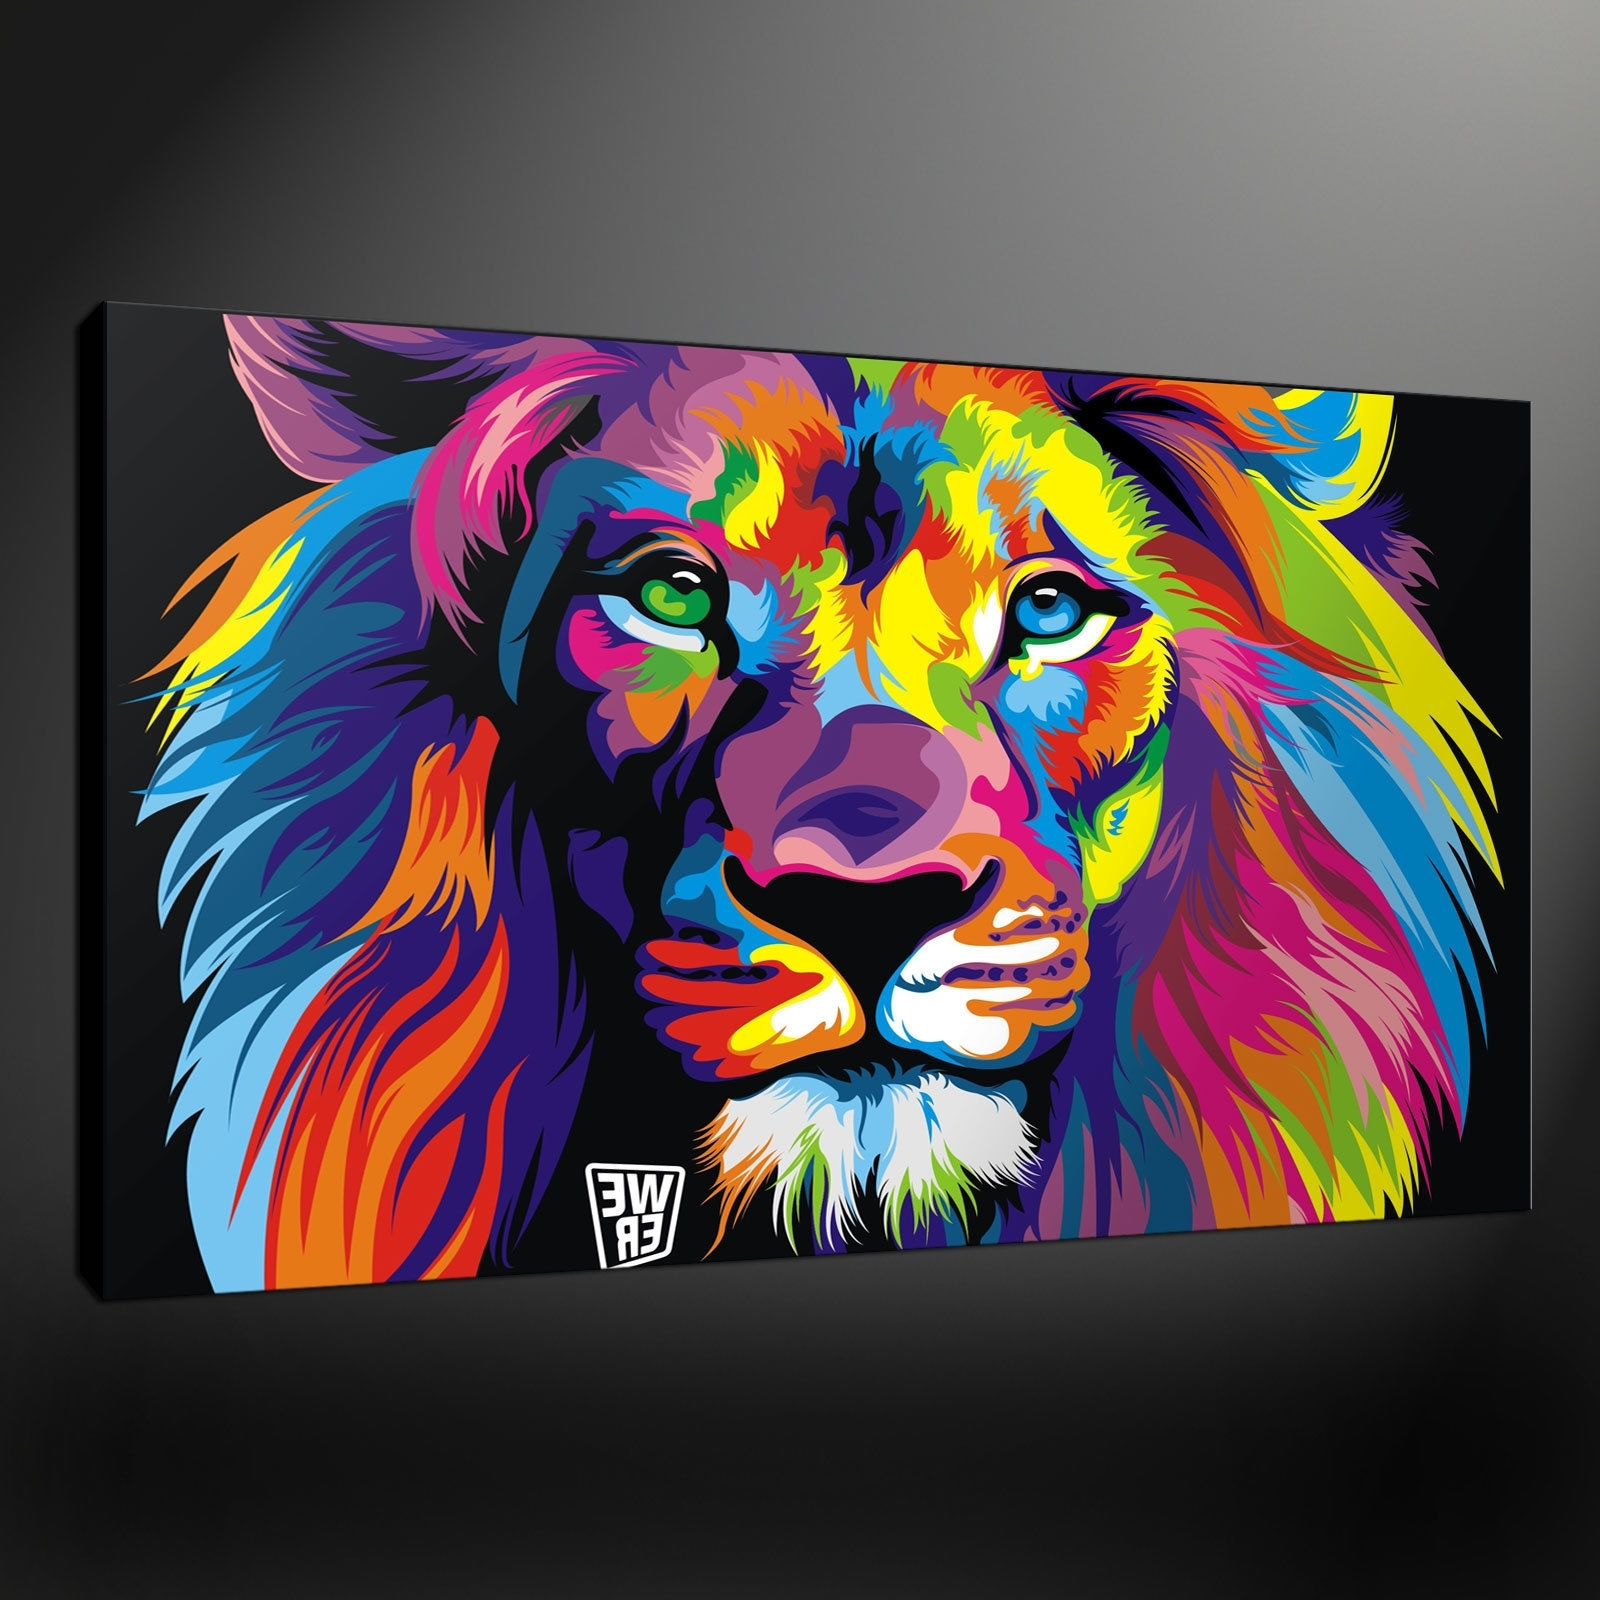 Popular Abstract Lion Quality Canvas Print Picture Wall Art Design Free Uk With Regard To Abstract Wall Art Prints (View 12 of 15)